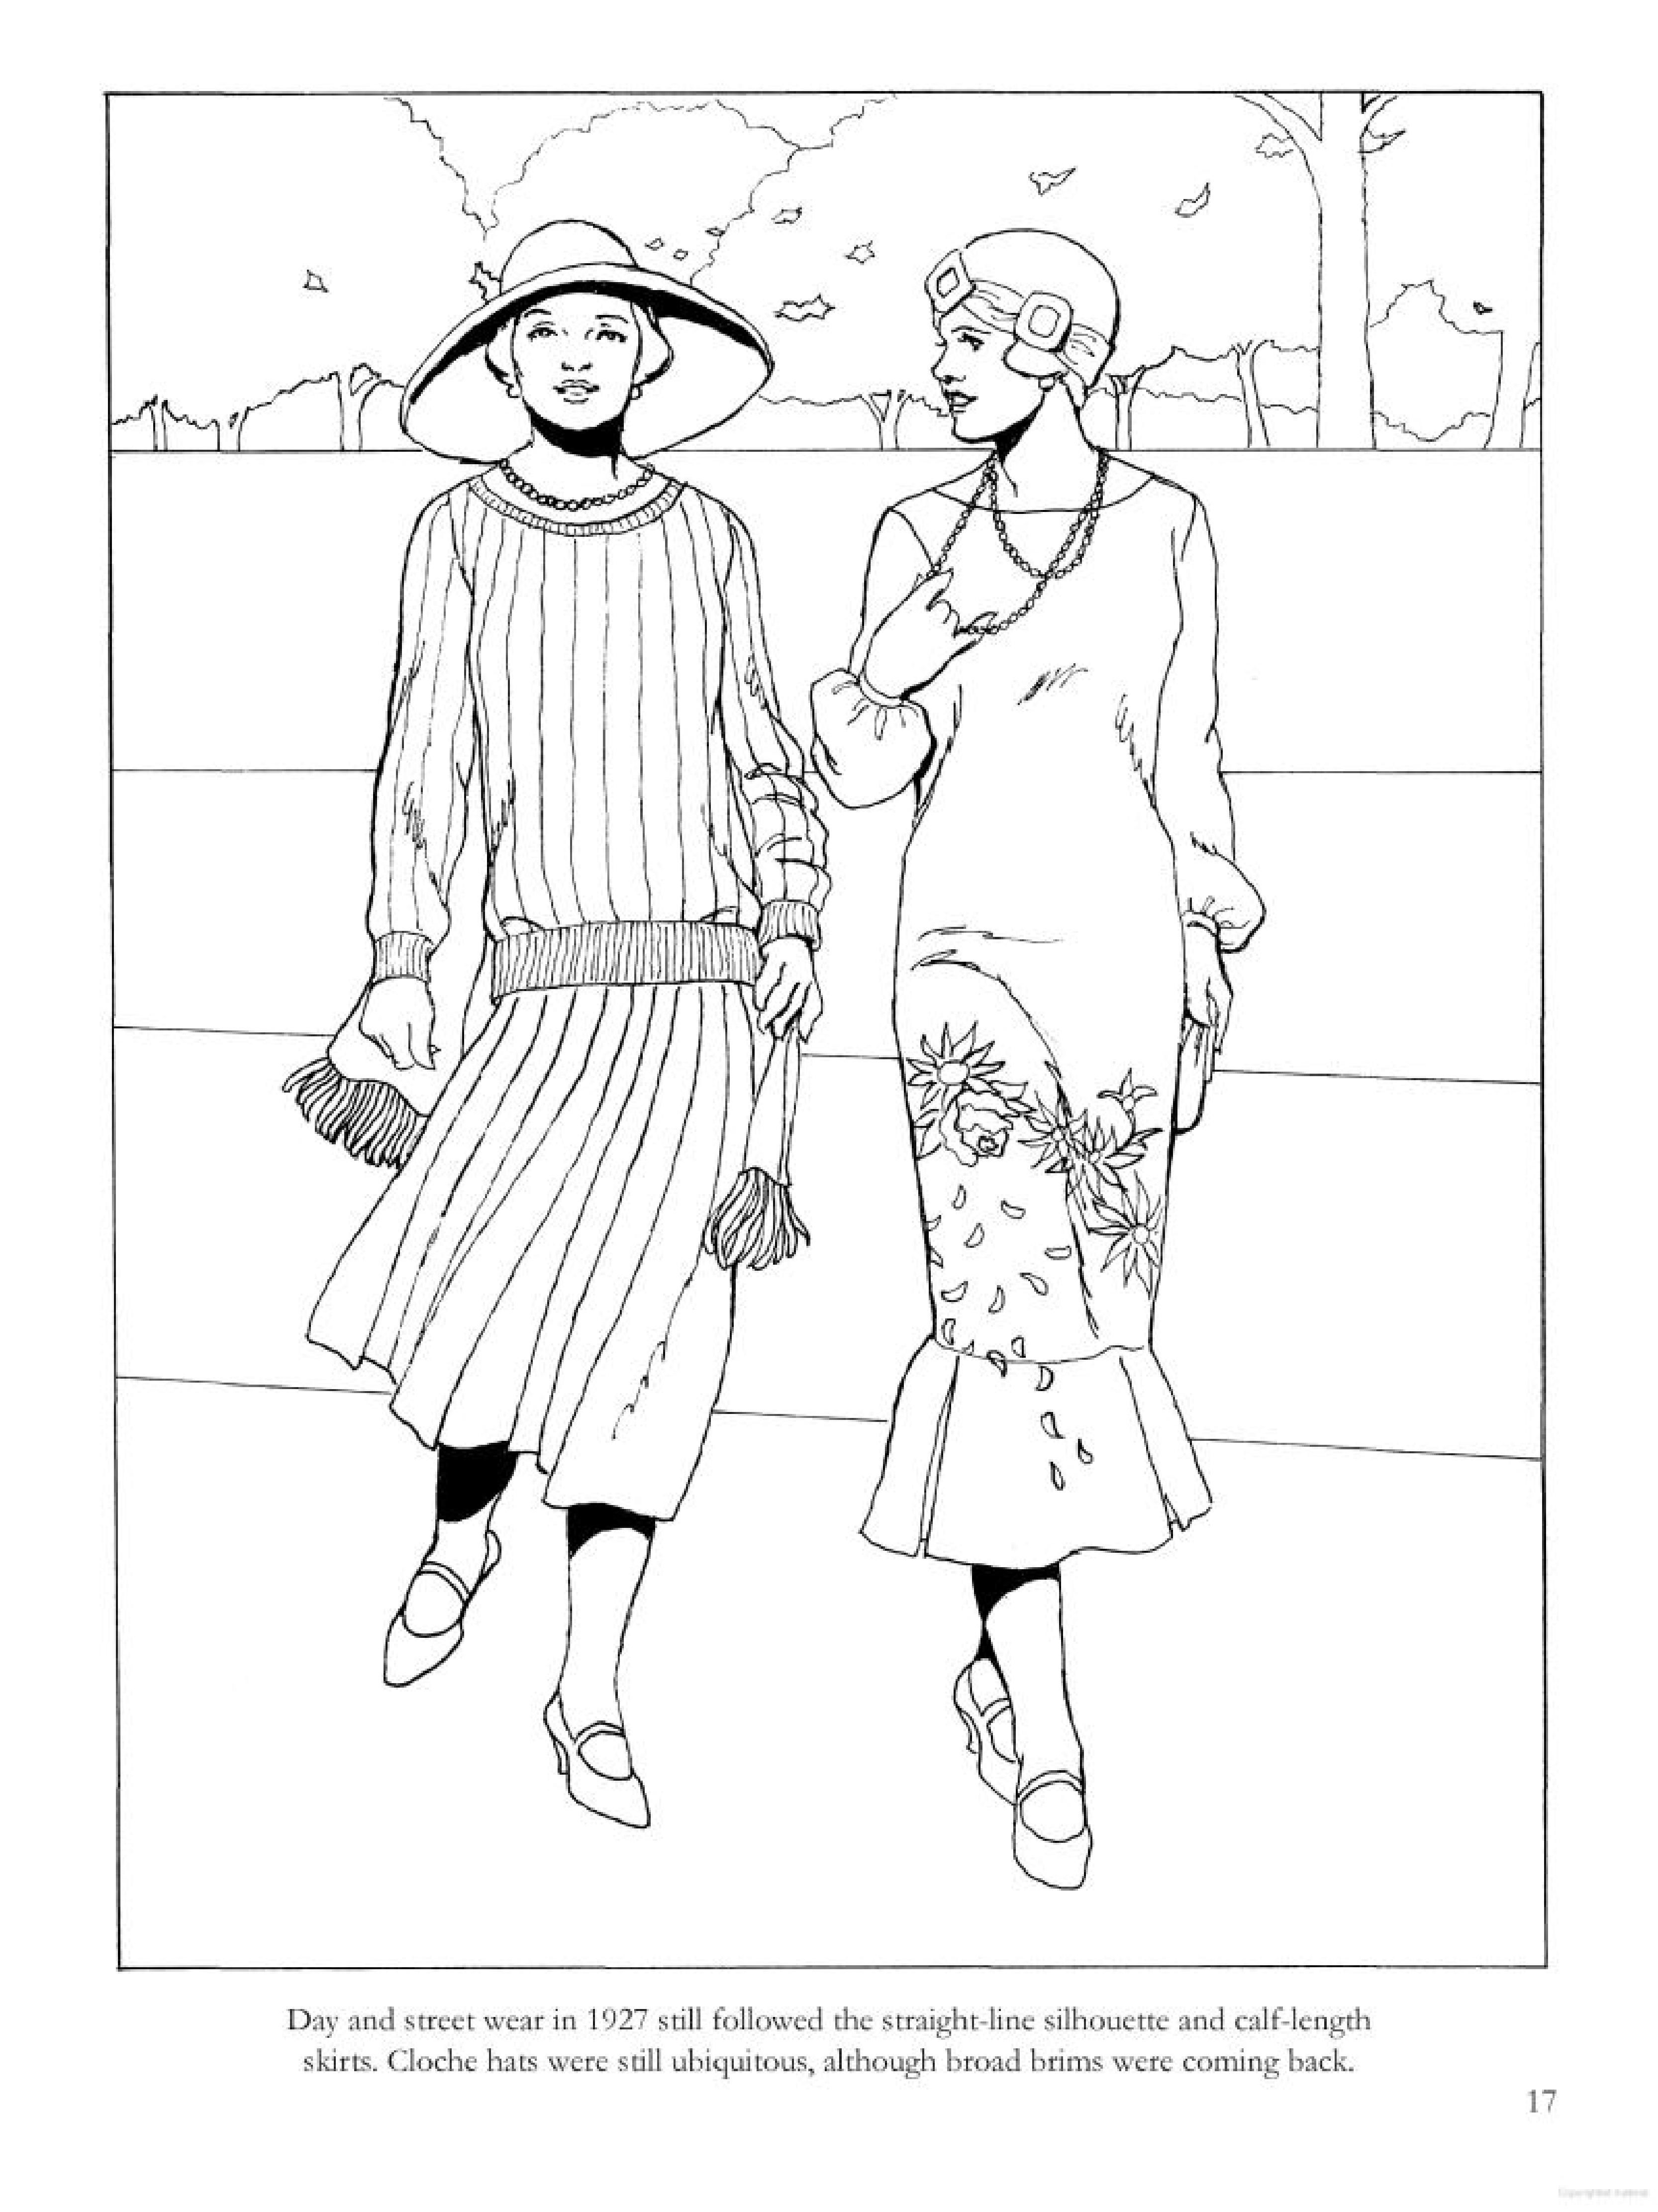 Day And Street Wear Ca 1927 From Fashions Of The Roaring Twenties Coloring Book Coloring Books Fashion Coloring Book Toy Story Coloring Pages